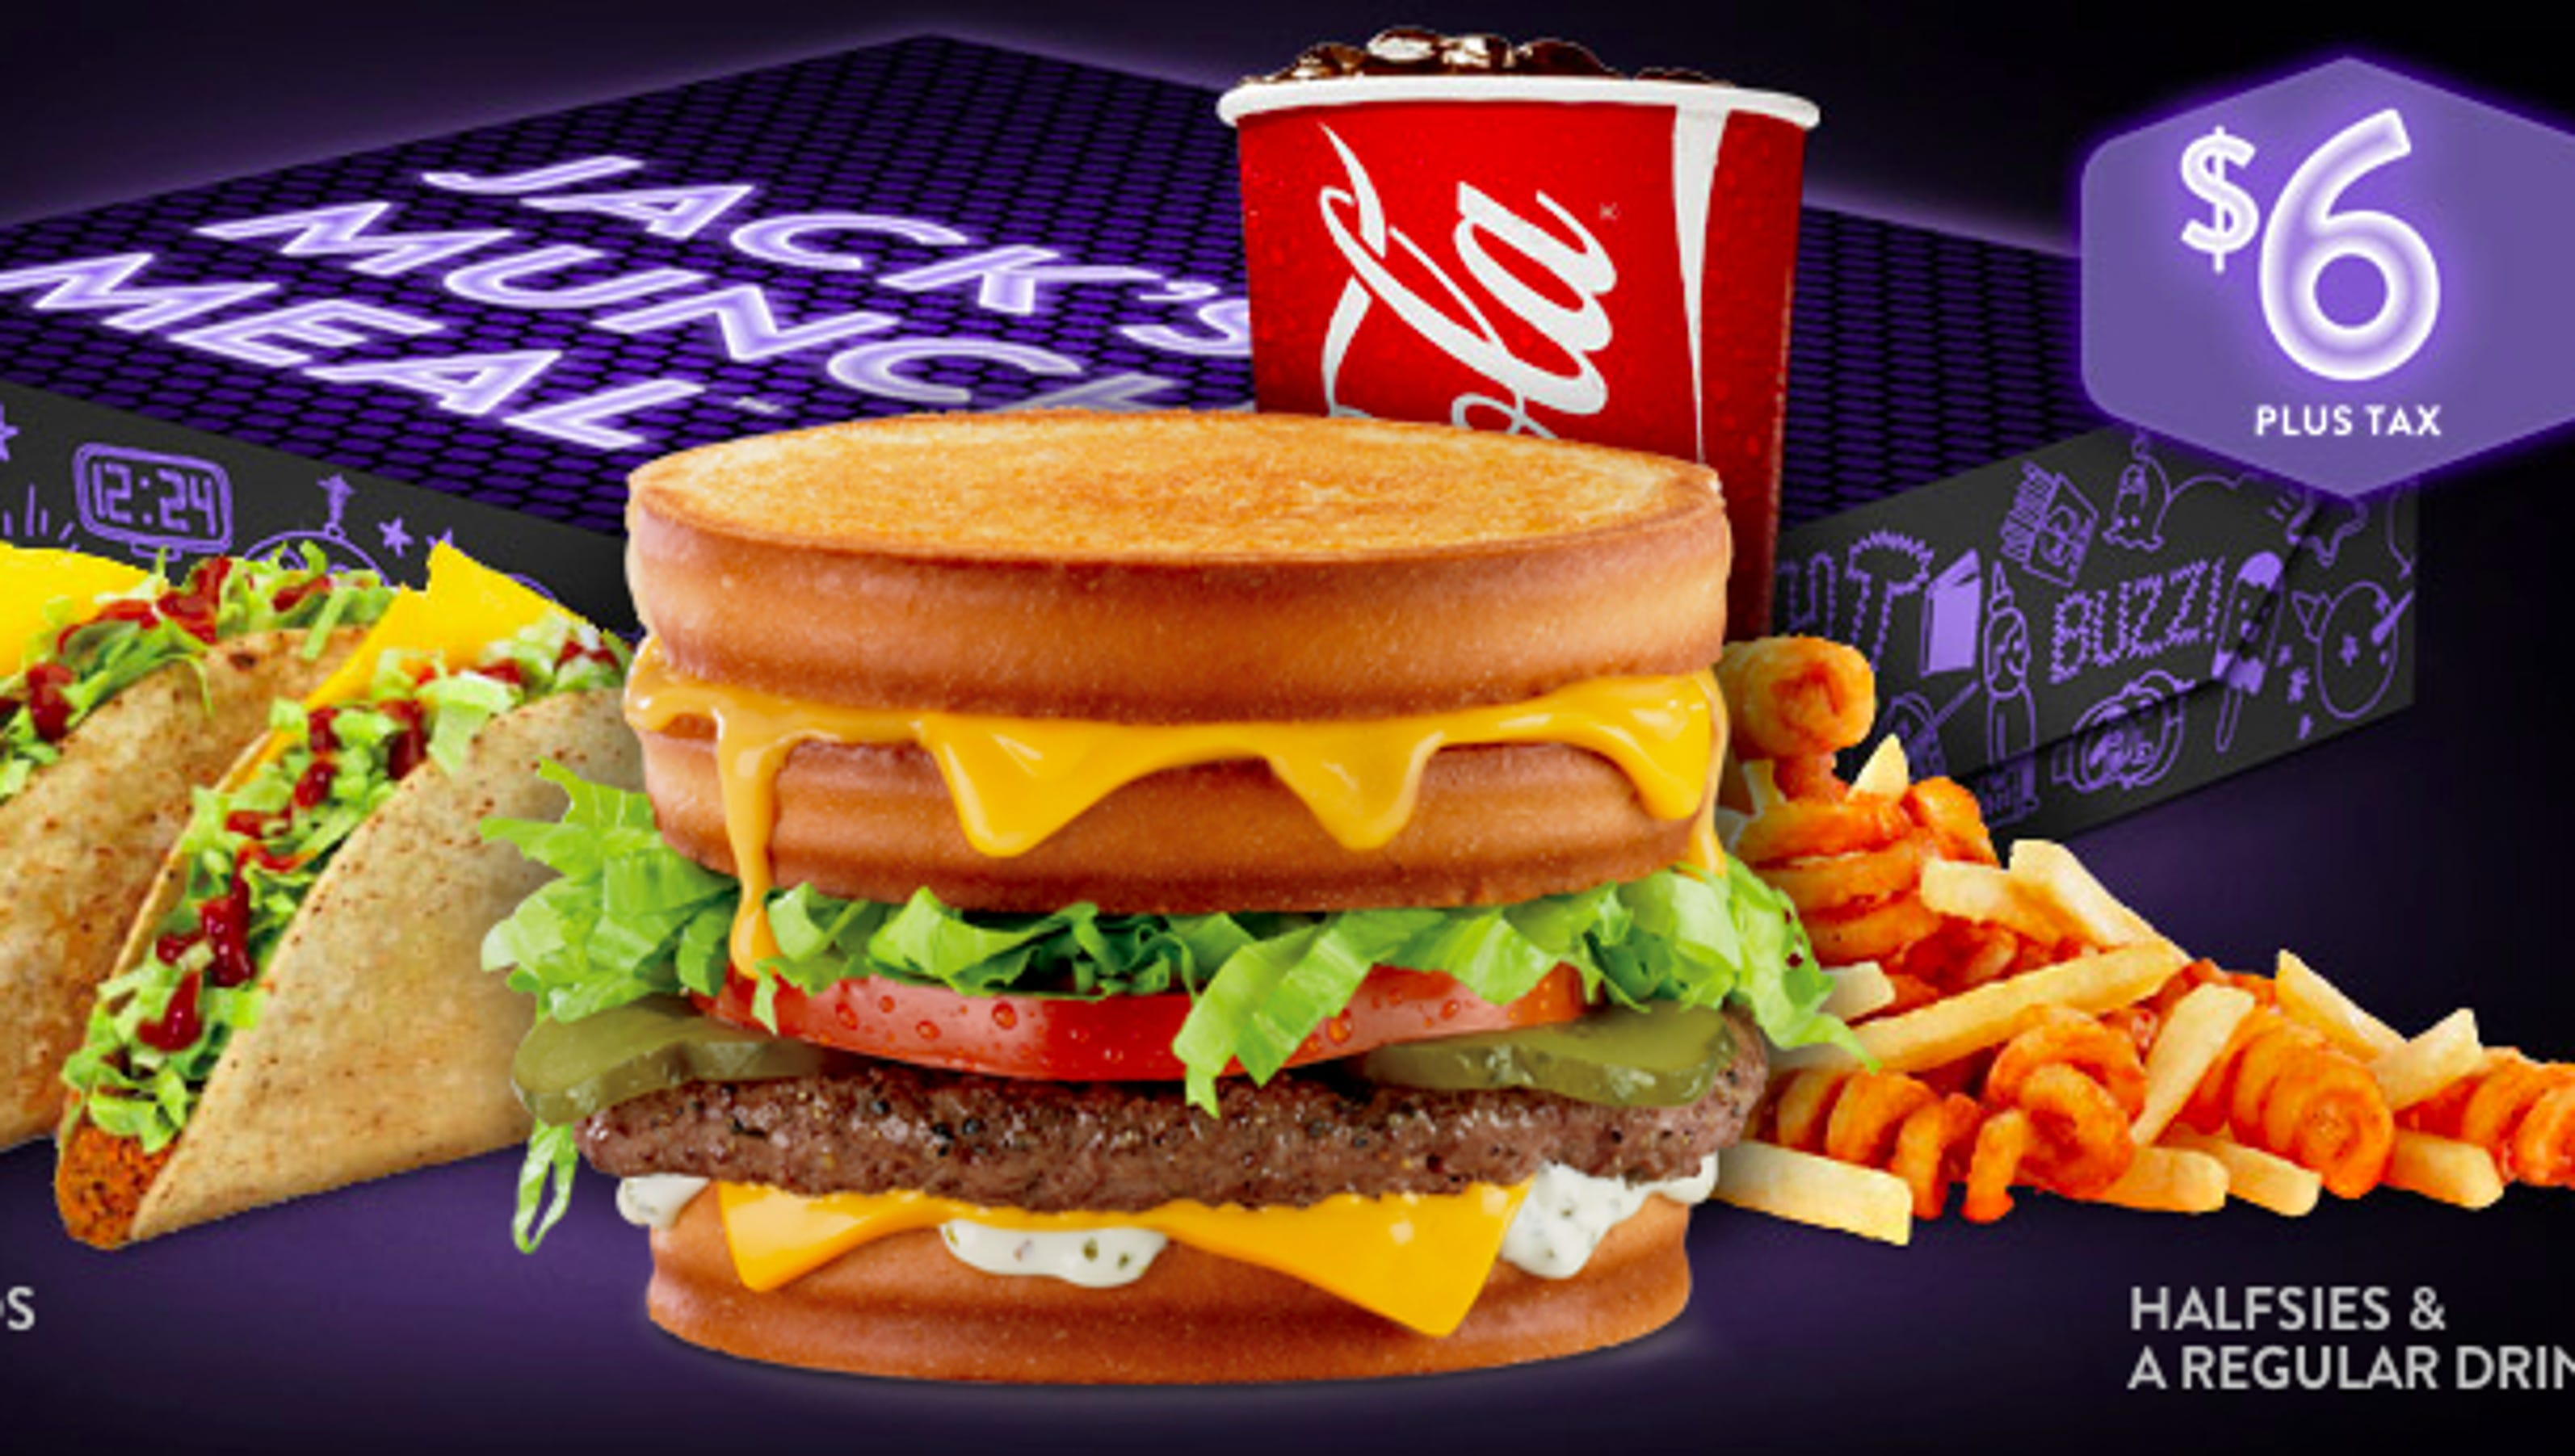 """Jack in the Box Munchie Meals Menu. """"For when its so late, it might be early"""". All meals on this late night menu are only available between 9 o79yv71net.ml 5 am and they are all over calories."""